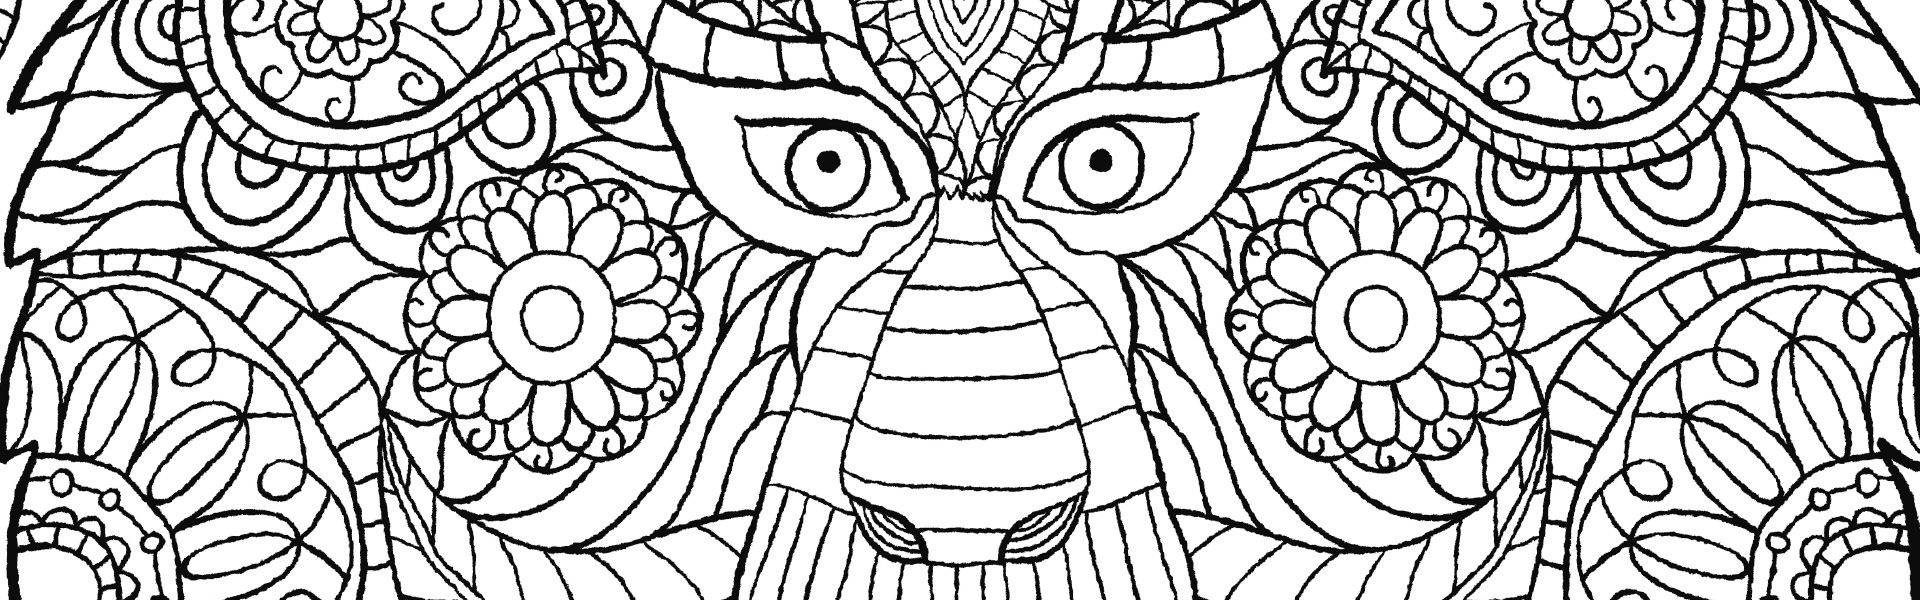 Jungle book colouring in pictures - The Macmillan Jungle Book Colouring Book Free Monkey Pattern Download